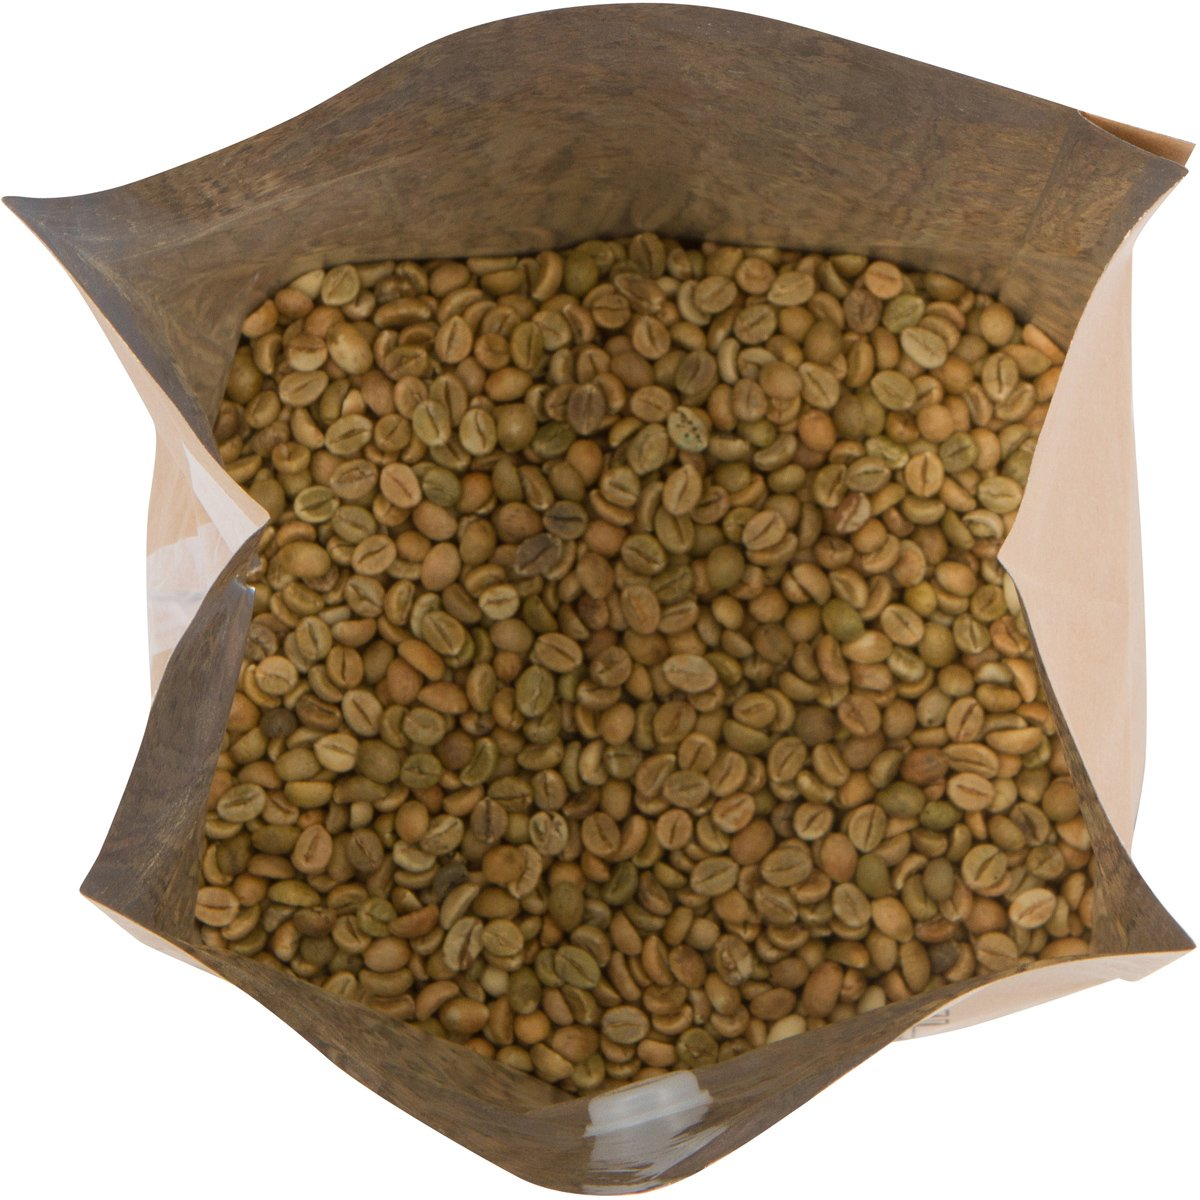 COLOMBIAN SUPREMO Unroasted Green Raw Coffee Beans, 5 LB Bulk Bag, 100% Arabica Top Grade Extra Large by Stone Street Coffee